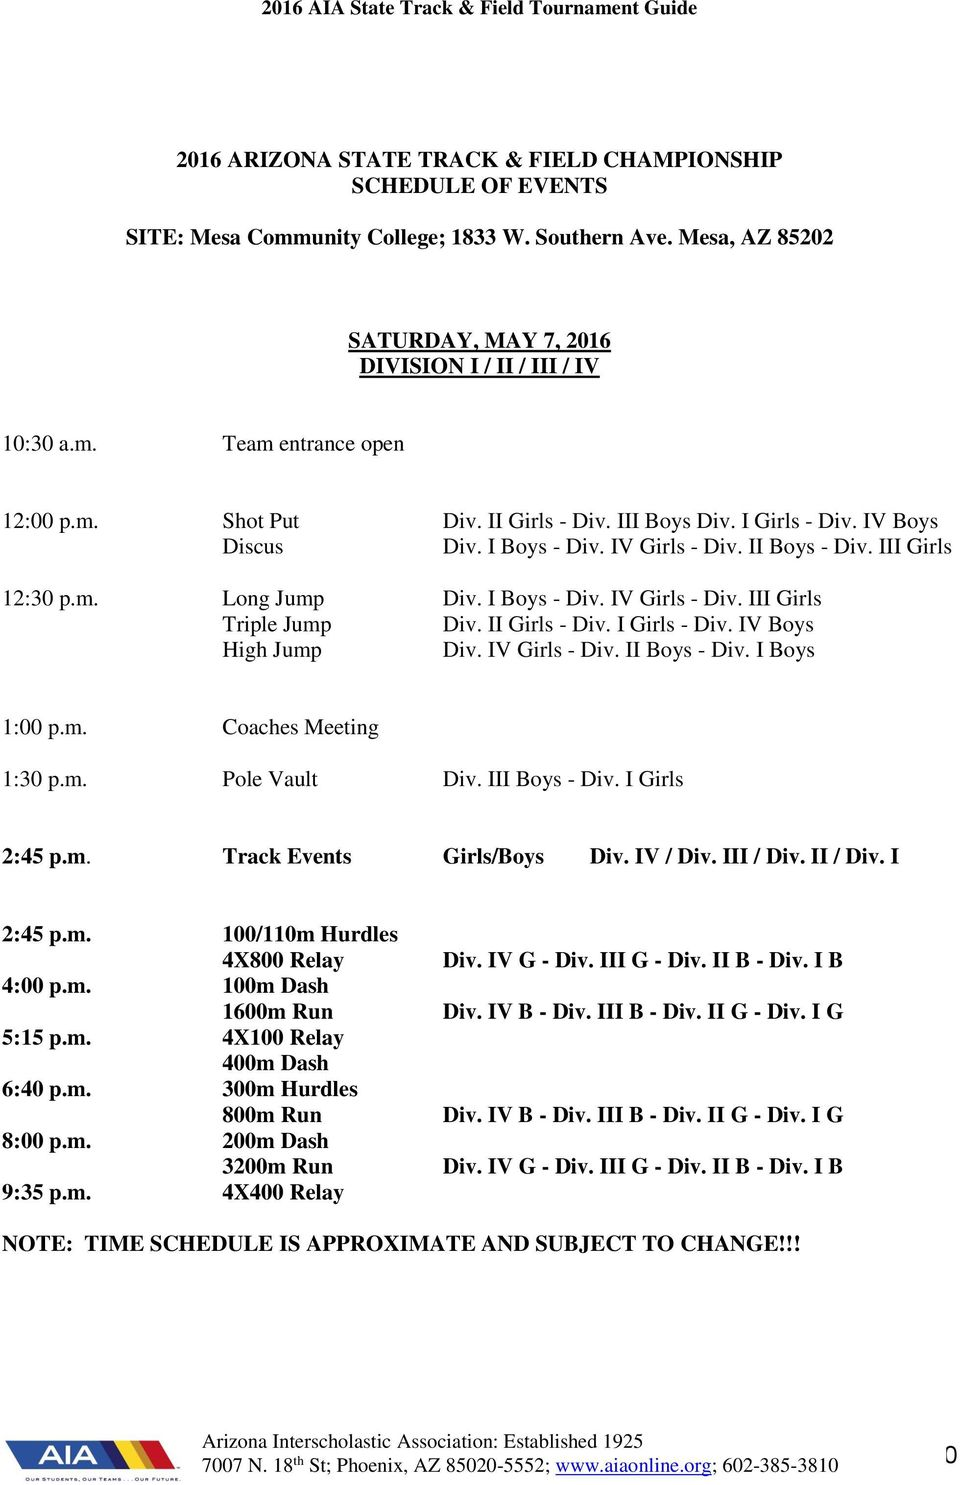 II Girls - Div. I Girls - Div. IV Boys High Jump Div. IV Girls - Div. II Boys - Div. I Boys 1:00 p.m. Coaches Meeting 1:30 p.m. Pole Vault Div. III Boys - Div. I Girls 2:45 p.m. Track Events Girls/Boys Div.